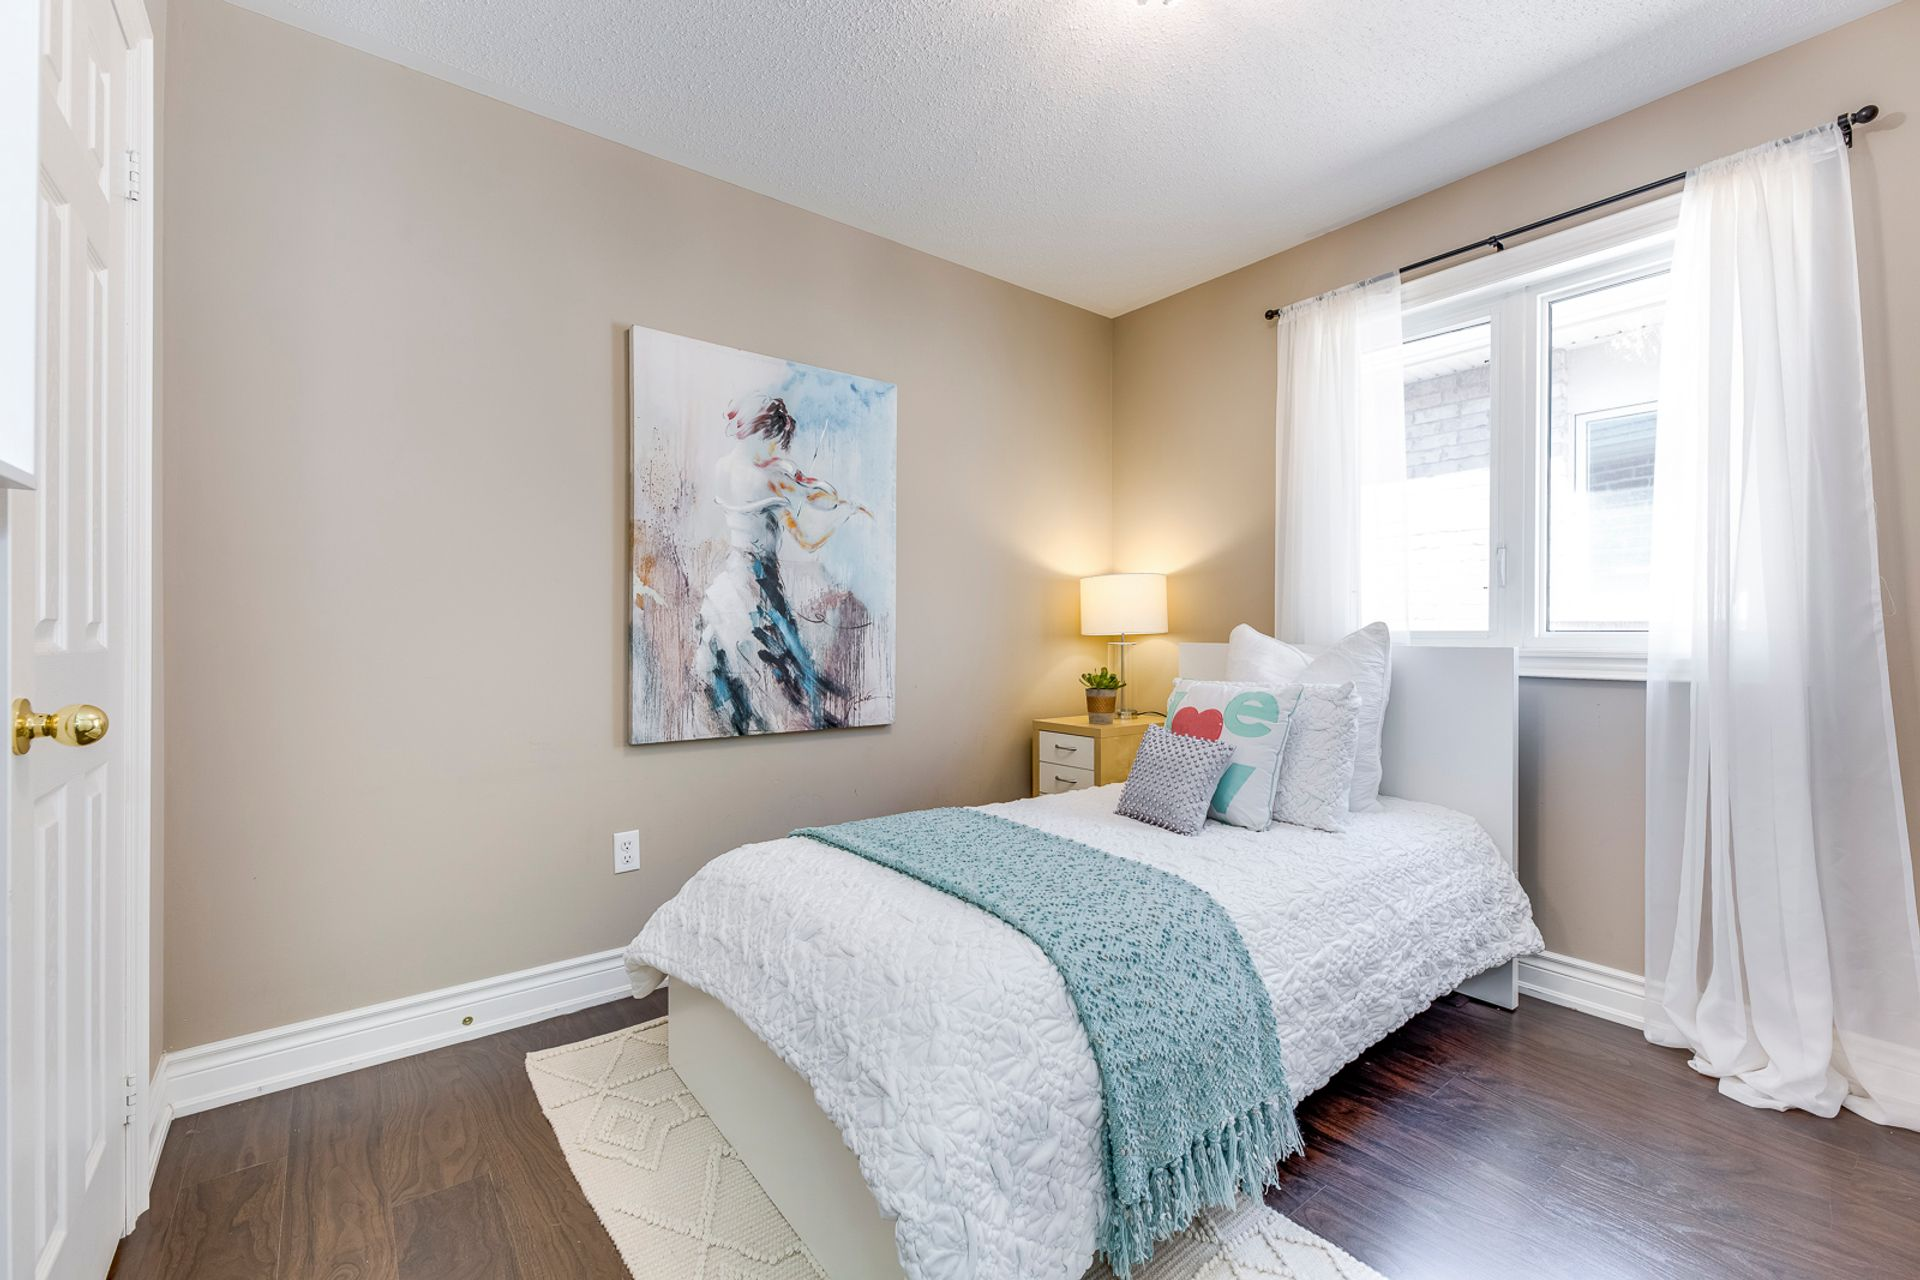 mls-49 at 5480 Meadowcrest Avenue, Churchill Meadows, Mississauga